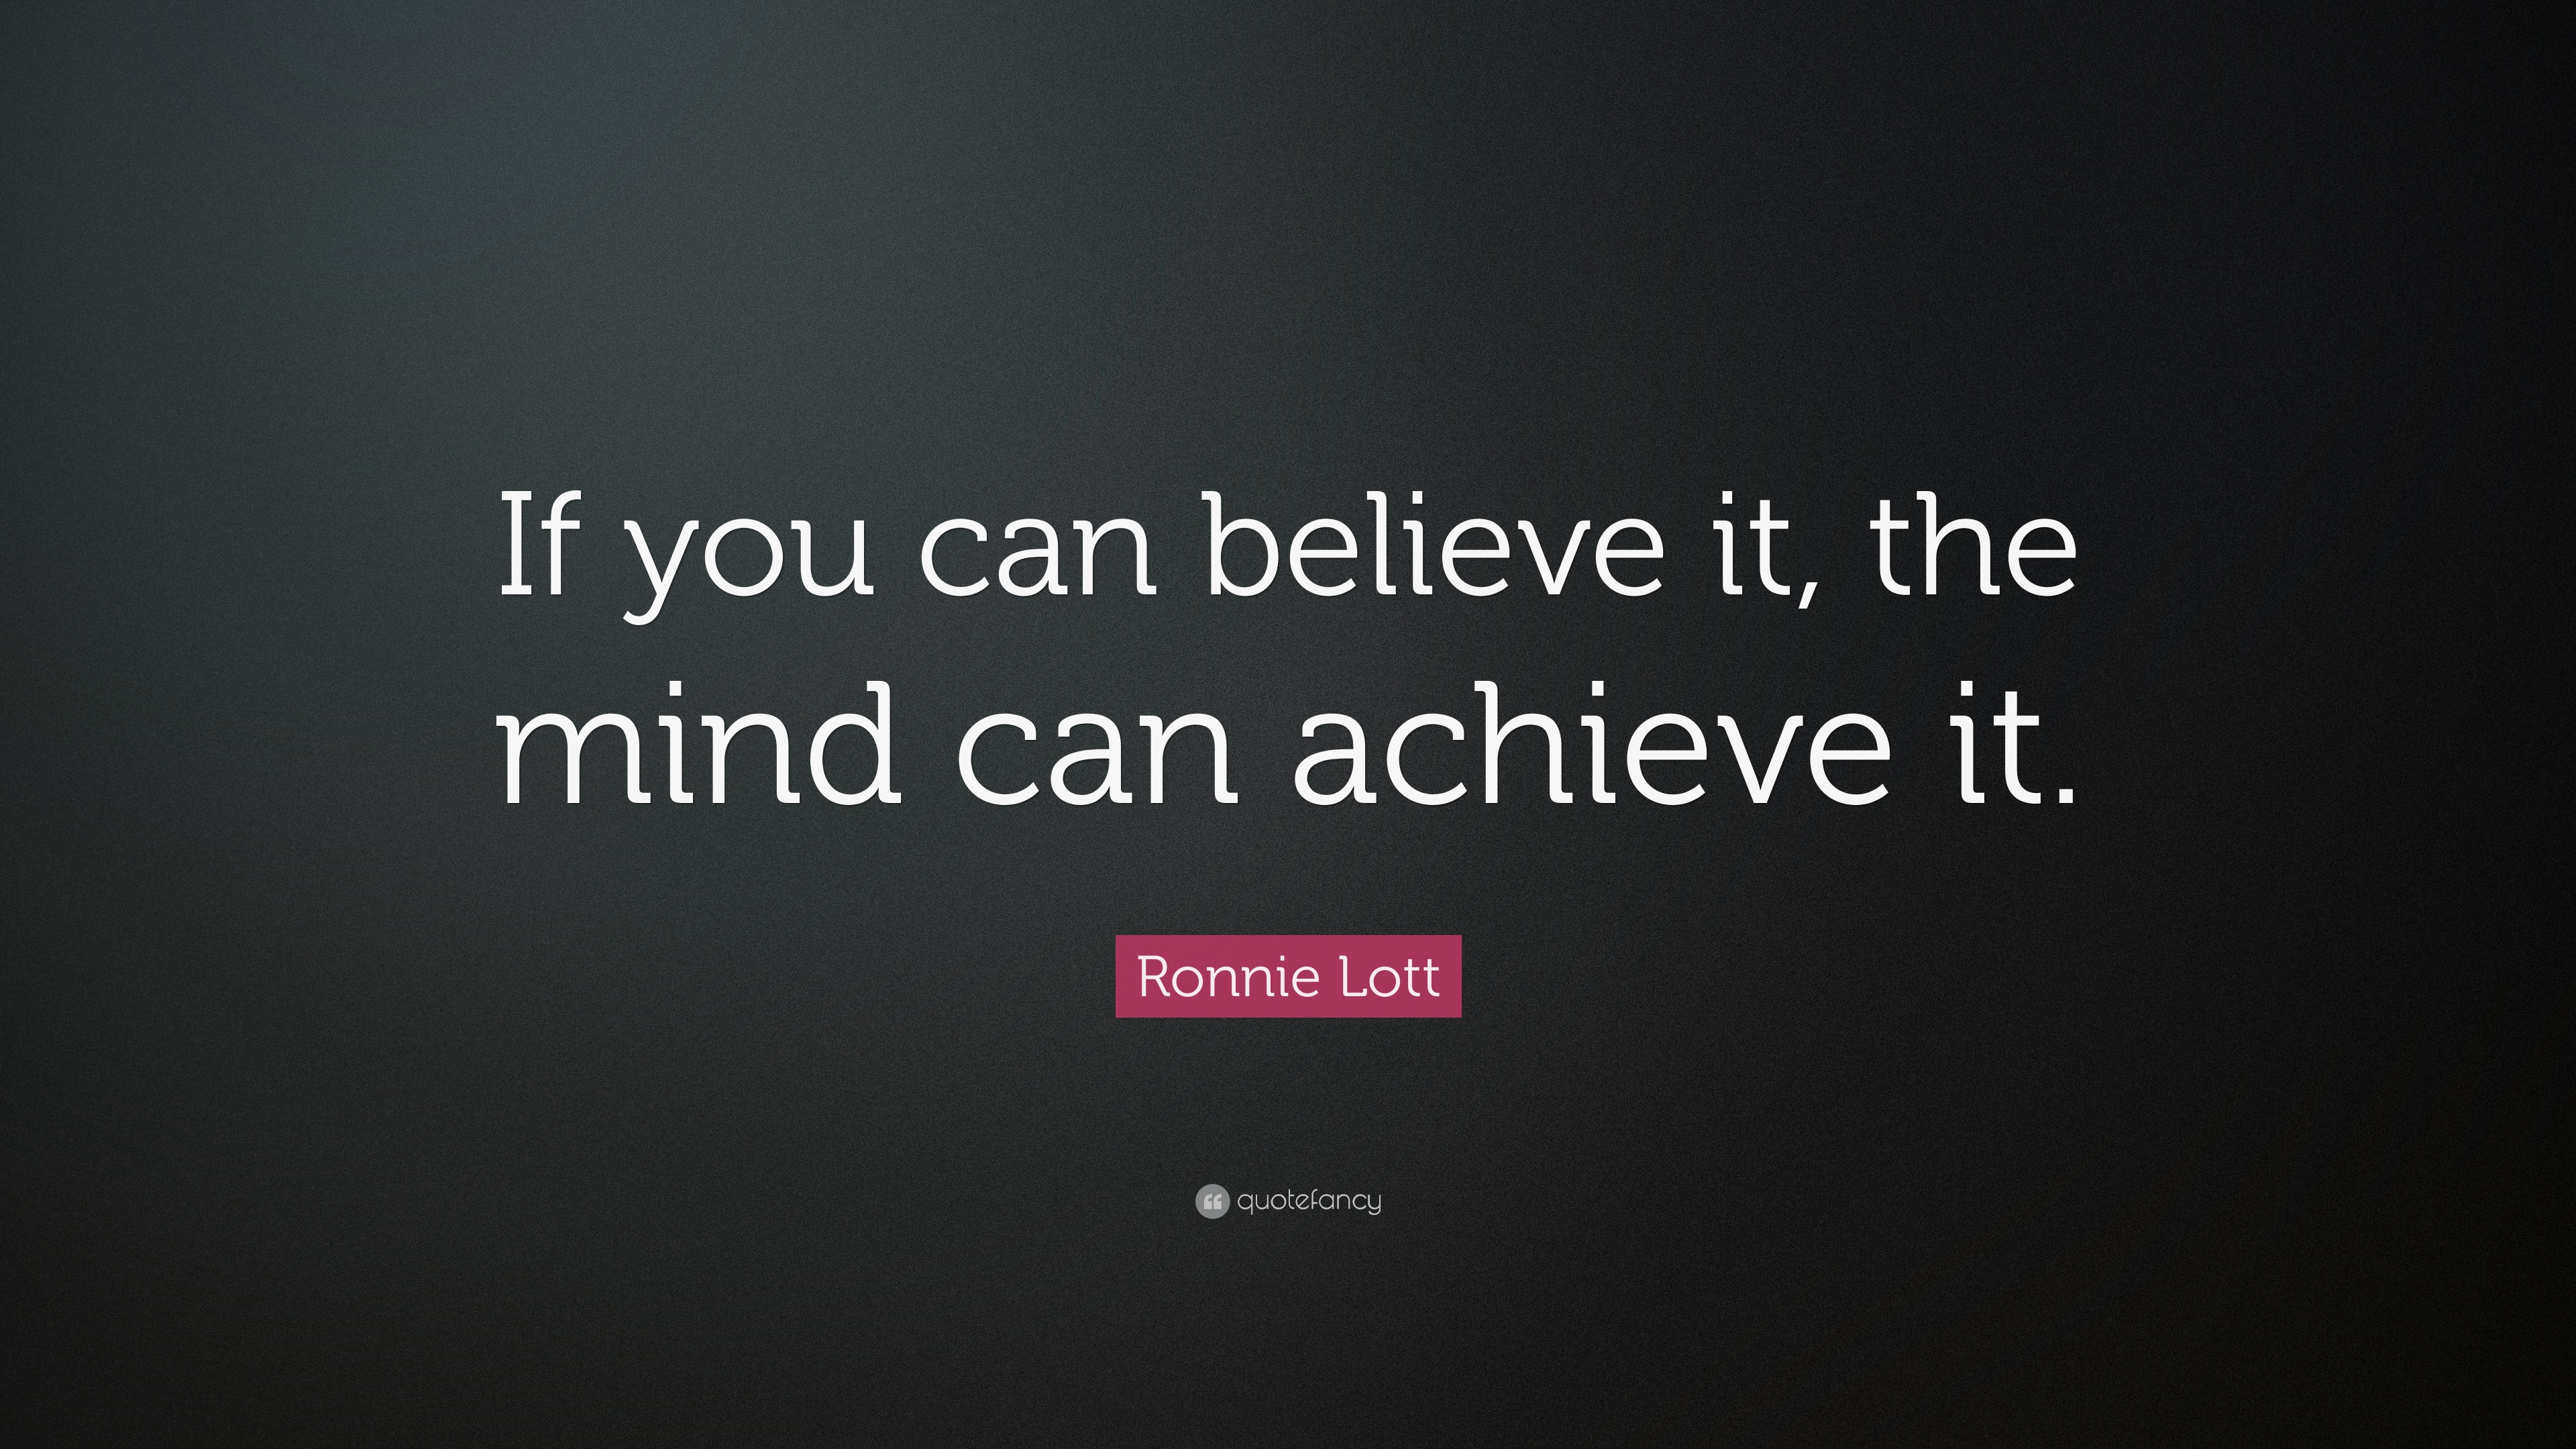 Awesome Ronnie Lott Quote: U201cIf You Can Believe It, The Mind Can Achieve It Photo Gallery